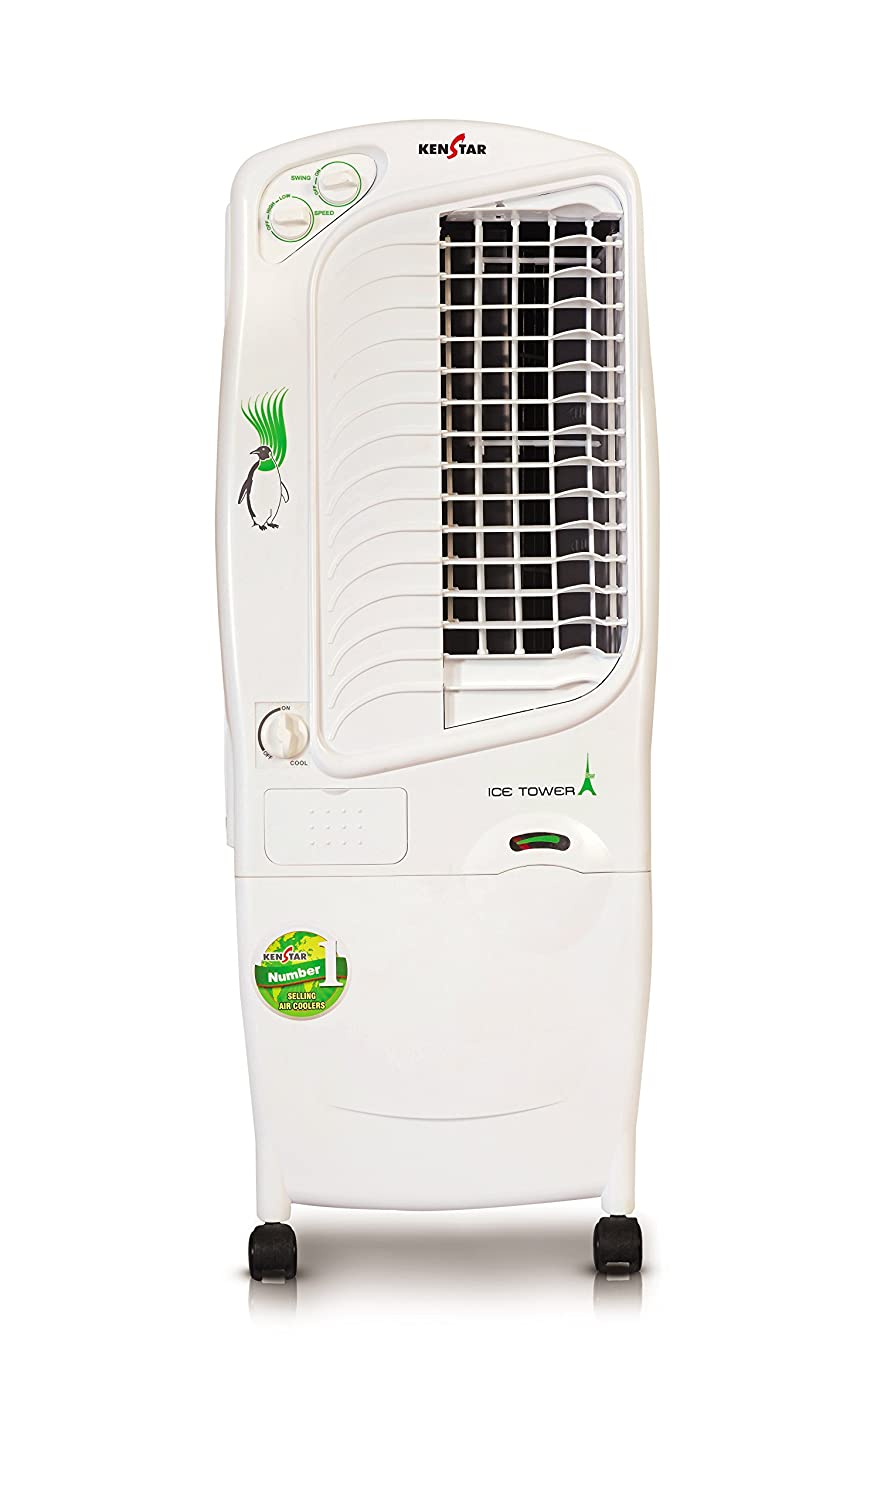 Kenstar Ice Tower Air Cooler Image